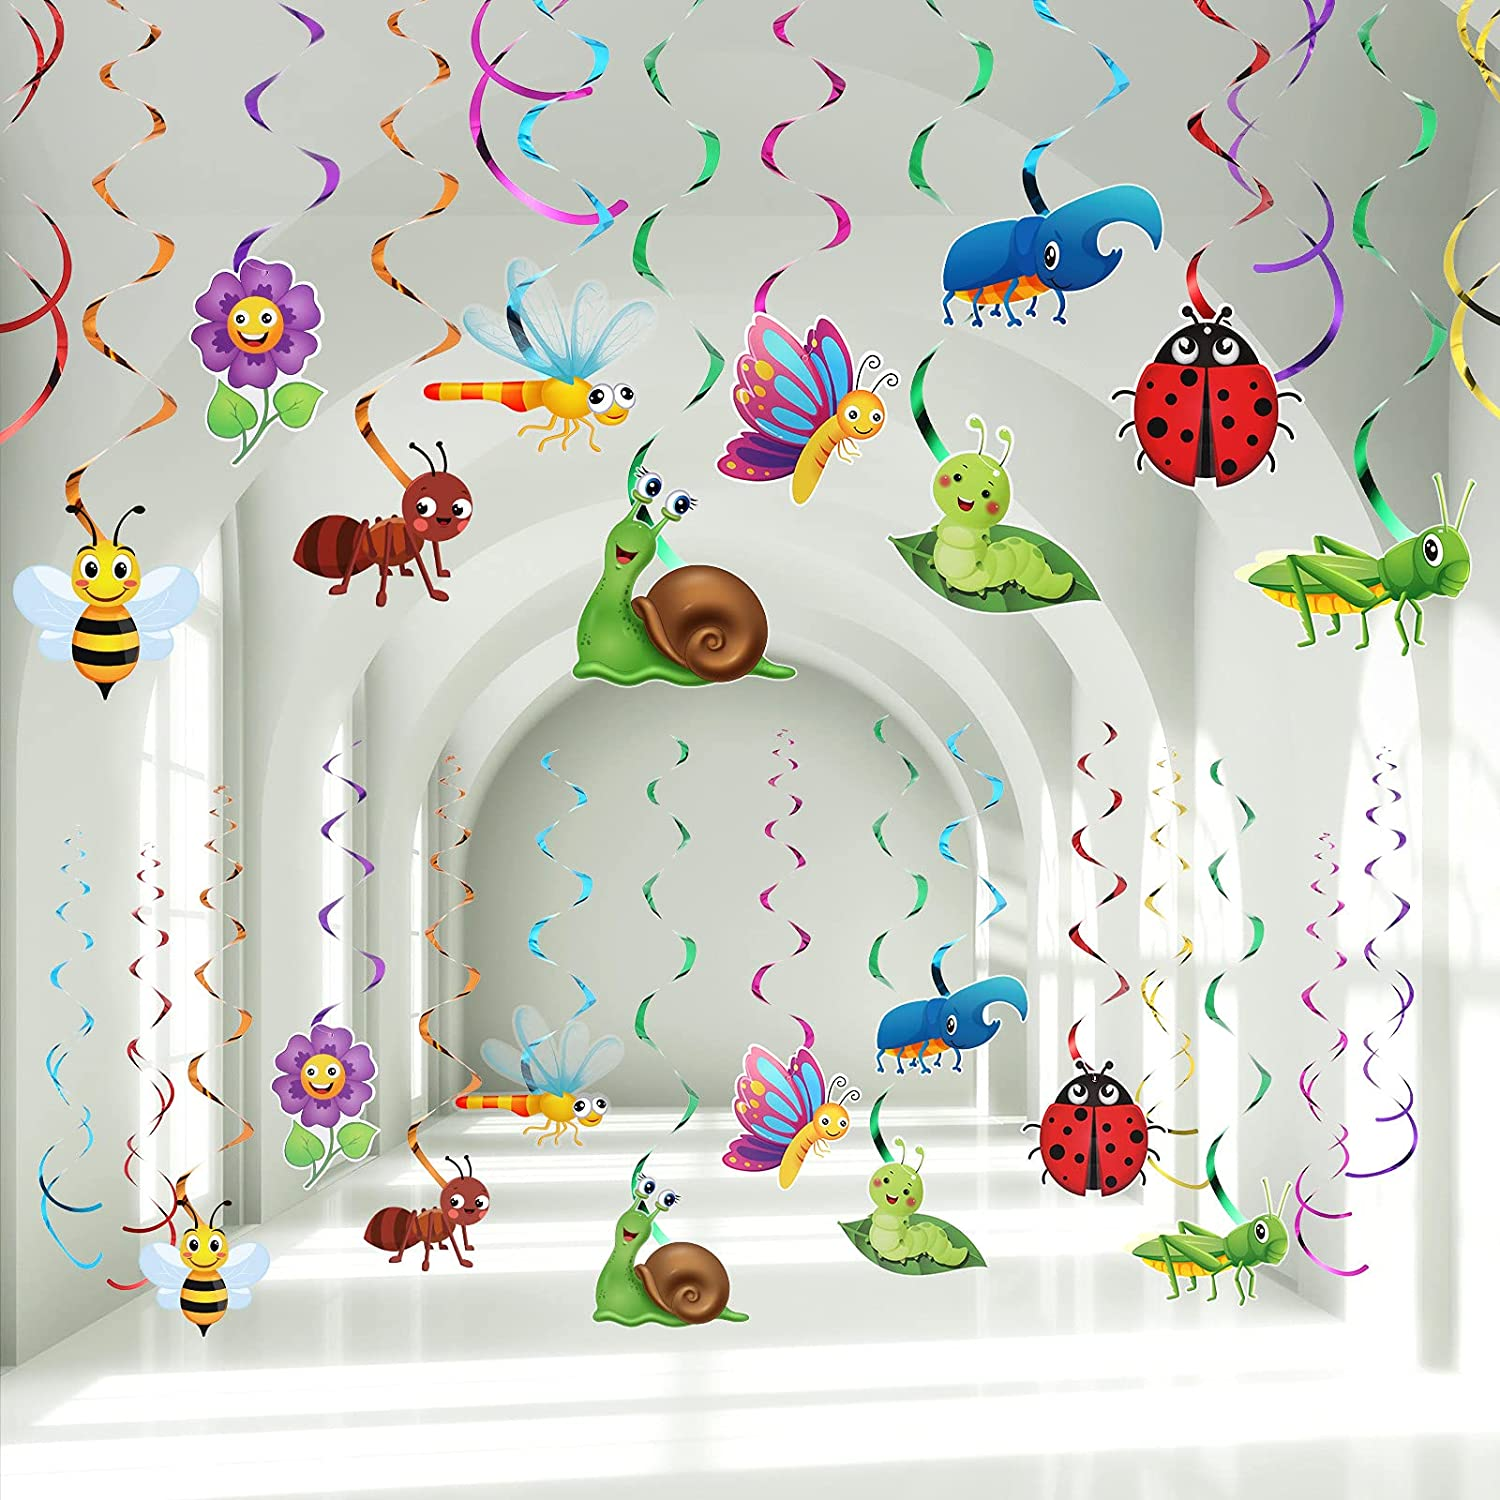 30 Pieces Spring Summer Insects Hanging Swirl Decorations, Butterfly Sunflower Bug Birthday Party Foil Ceiling Streamers for Garden Insects Themed Tea Party Bug Birthday Party Baby Shower Supplies